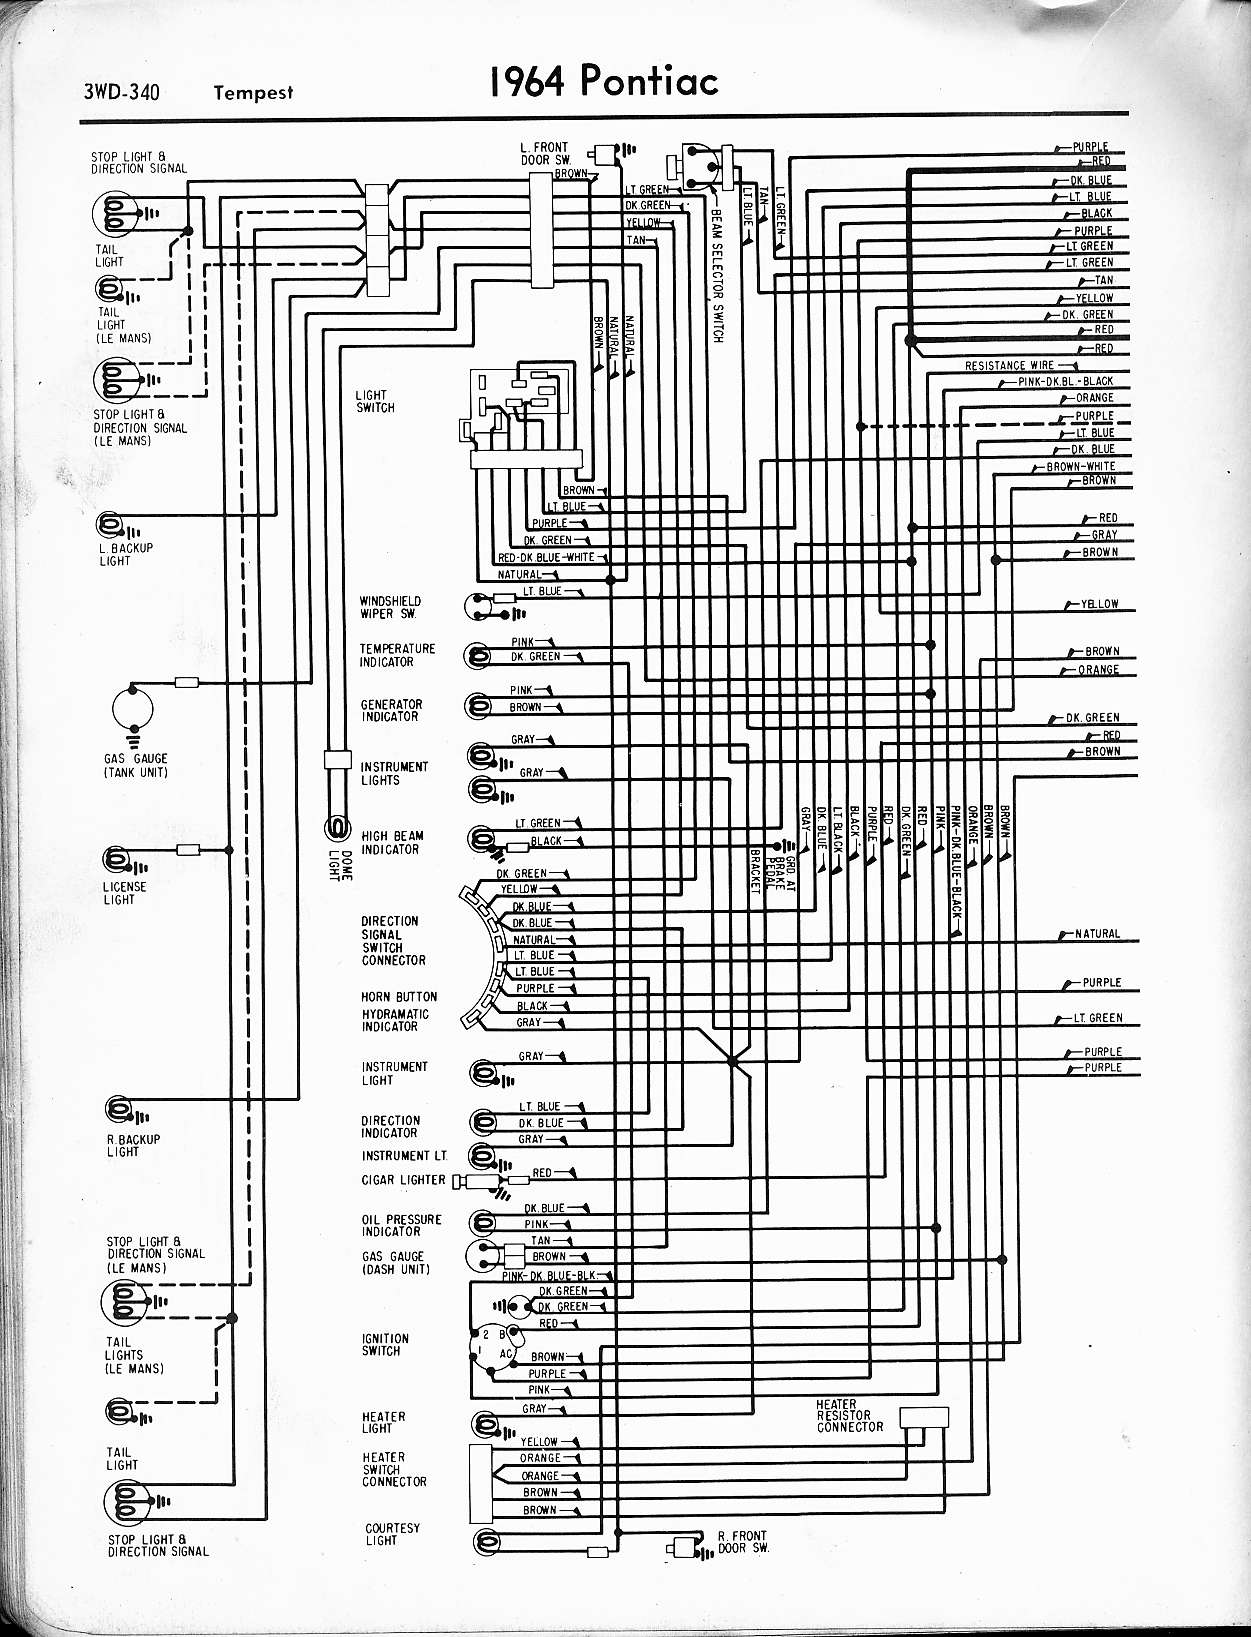 2004 Pontiac Gto Wiring Schematic Diagram Will Be A Thing 1964 Chevy Coil Diagrams Detailed Schematics Rh Jvpacks Com Radio 2009 G6